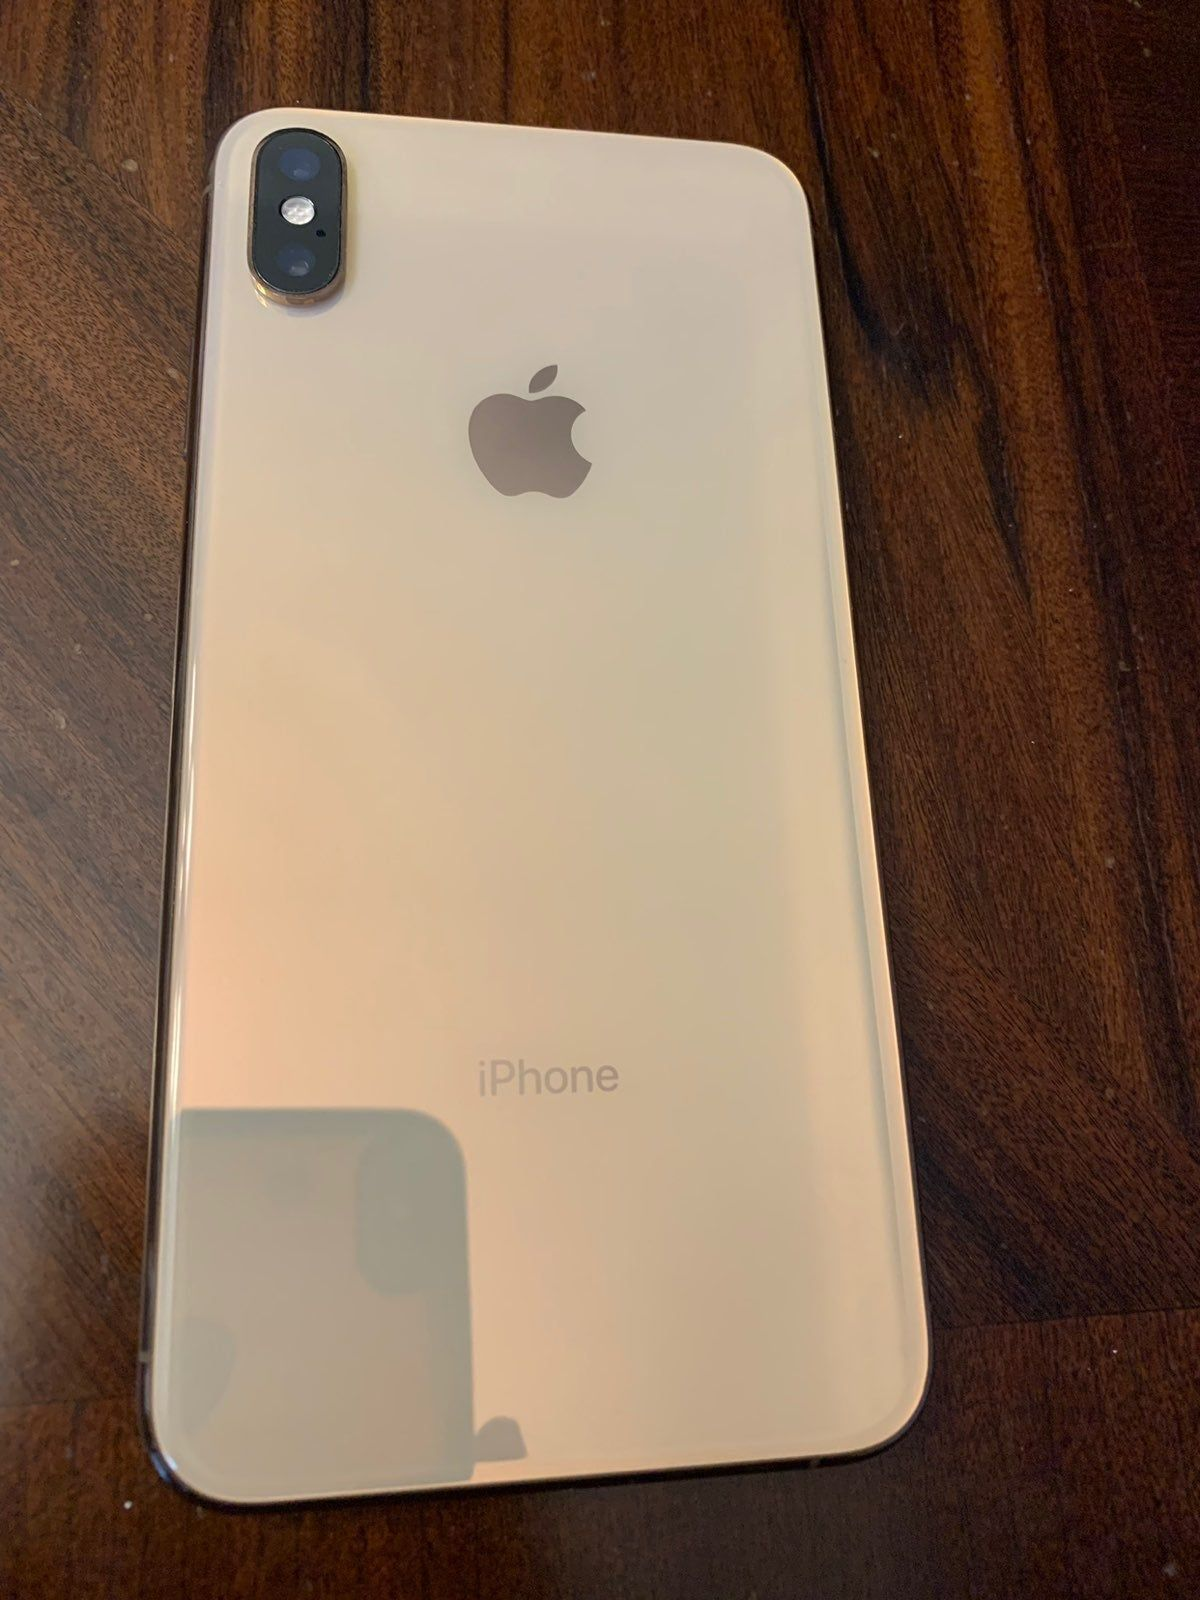 Iphone Xs Max Gold I Don T Know Much About This Phone But The Front Screen Is Cracked And The Phone Only Vibrates When The Ringer Iphone Apple Products Icloud